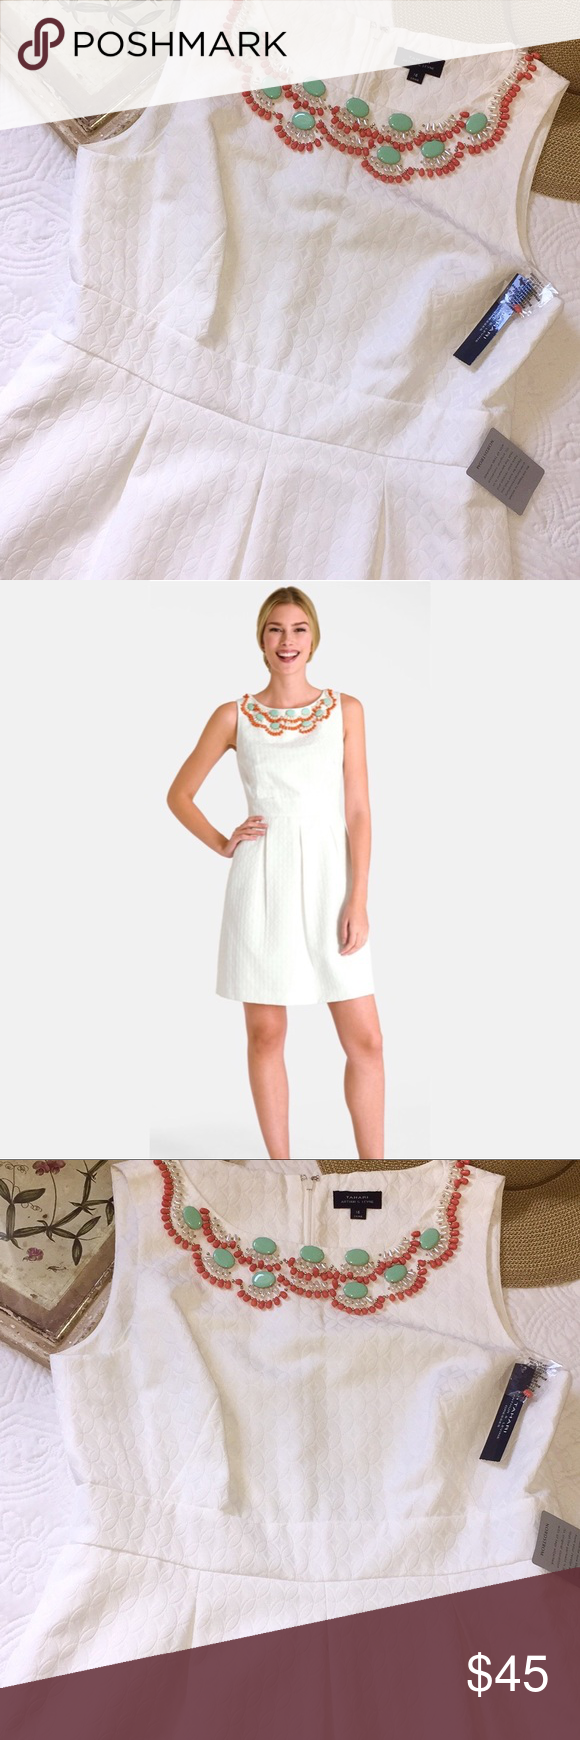 Nwt Tahari Asl Beaded Fit And Flare Dress Fit And Flare Dress Fit And Flare Clothes Design [ 1740 x 580 Pixel ]